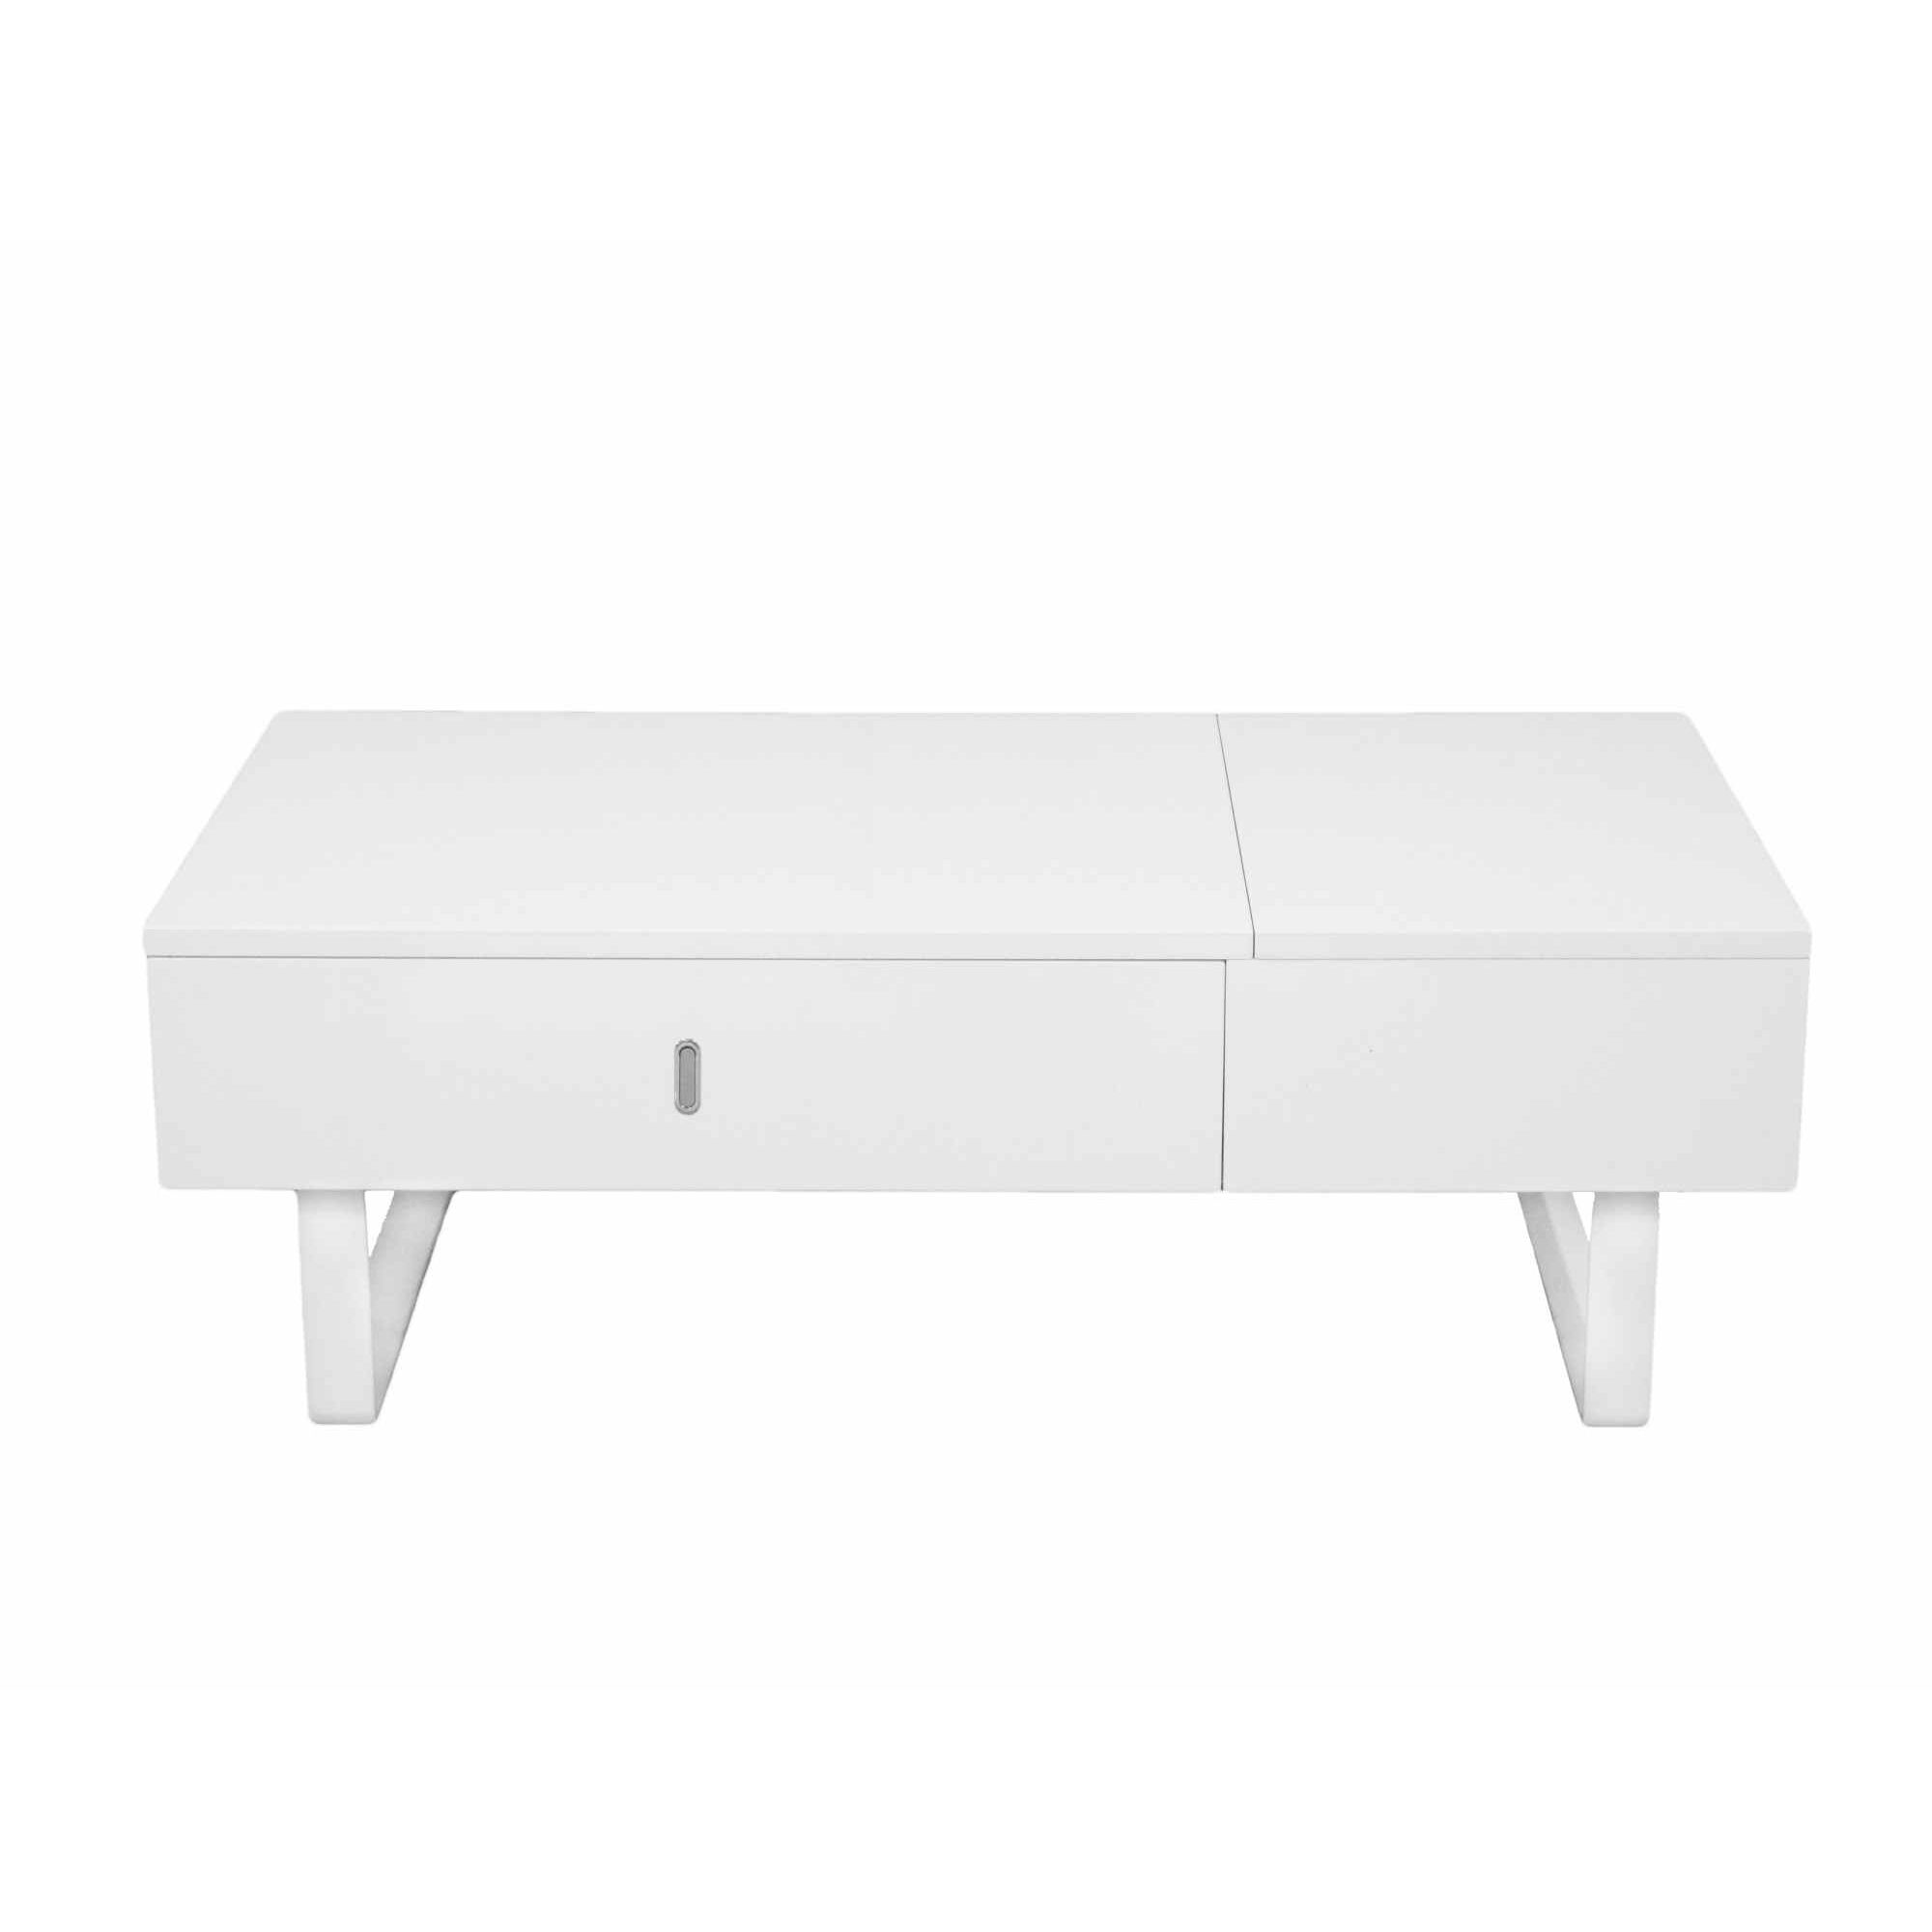 Deco in paris table basse relevable multifonction laque blanc tab blanc multi - Table relevable blanc laque ...